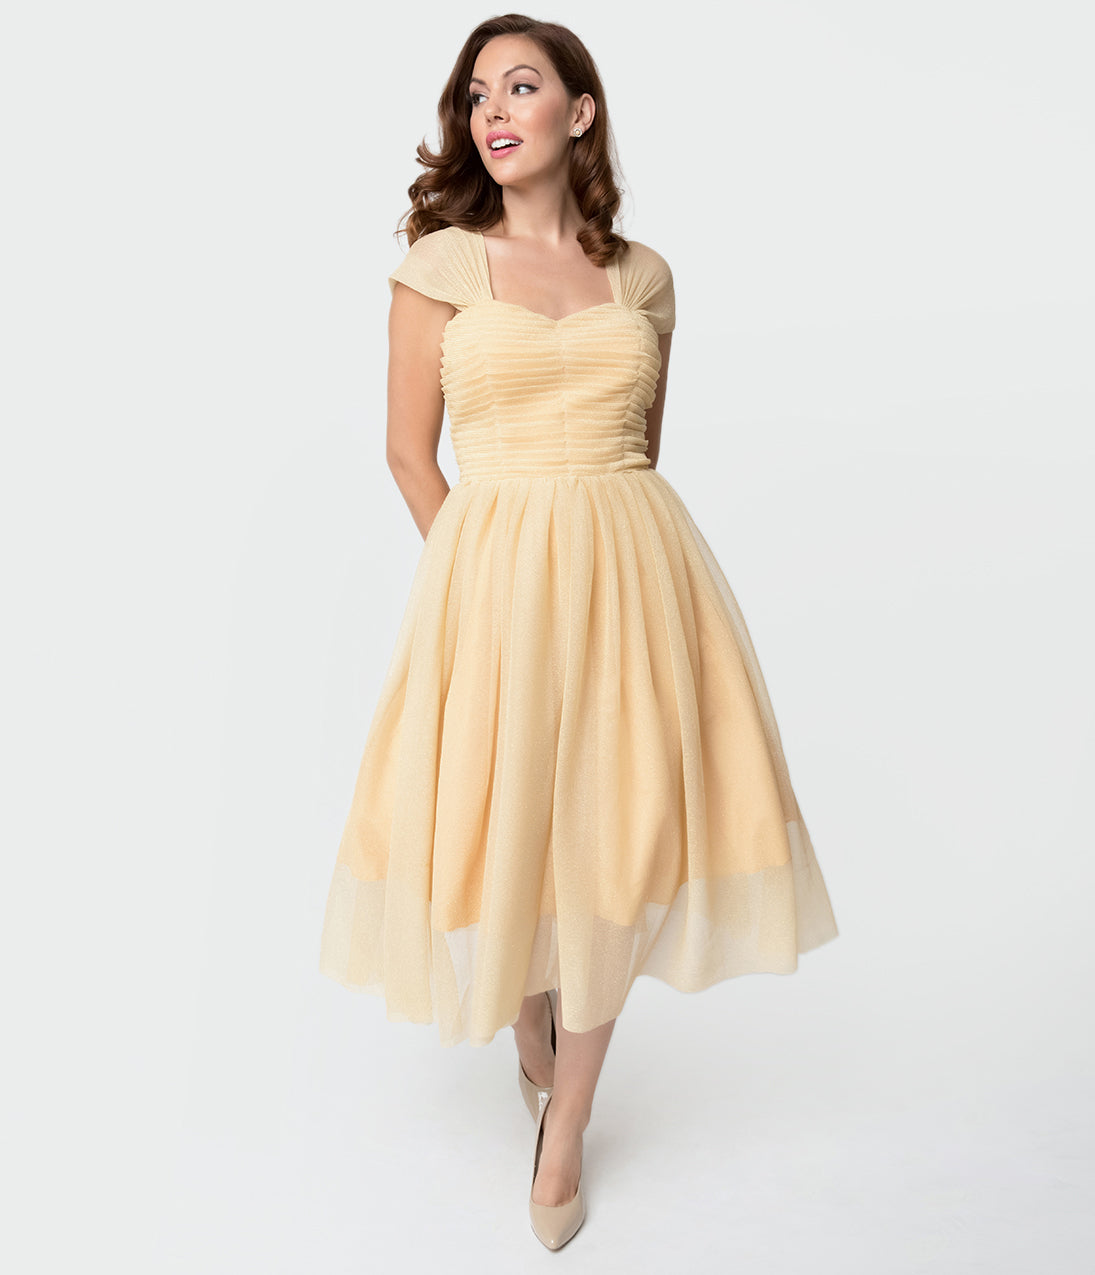 1950s Dresses, 50s Dresses | 1950s Style Dresses Unique Vintage Champagne  Gold Glitter Garden State Mesh Cocktail Dress $118.00 AT vintagedancer.com